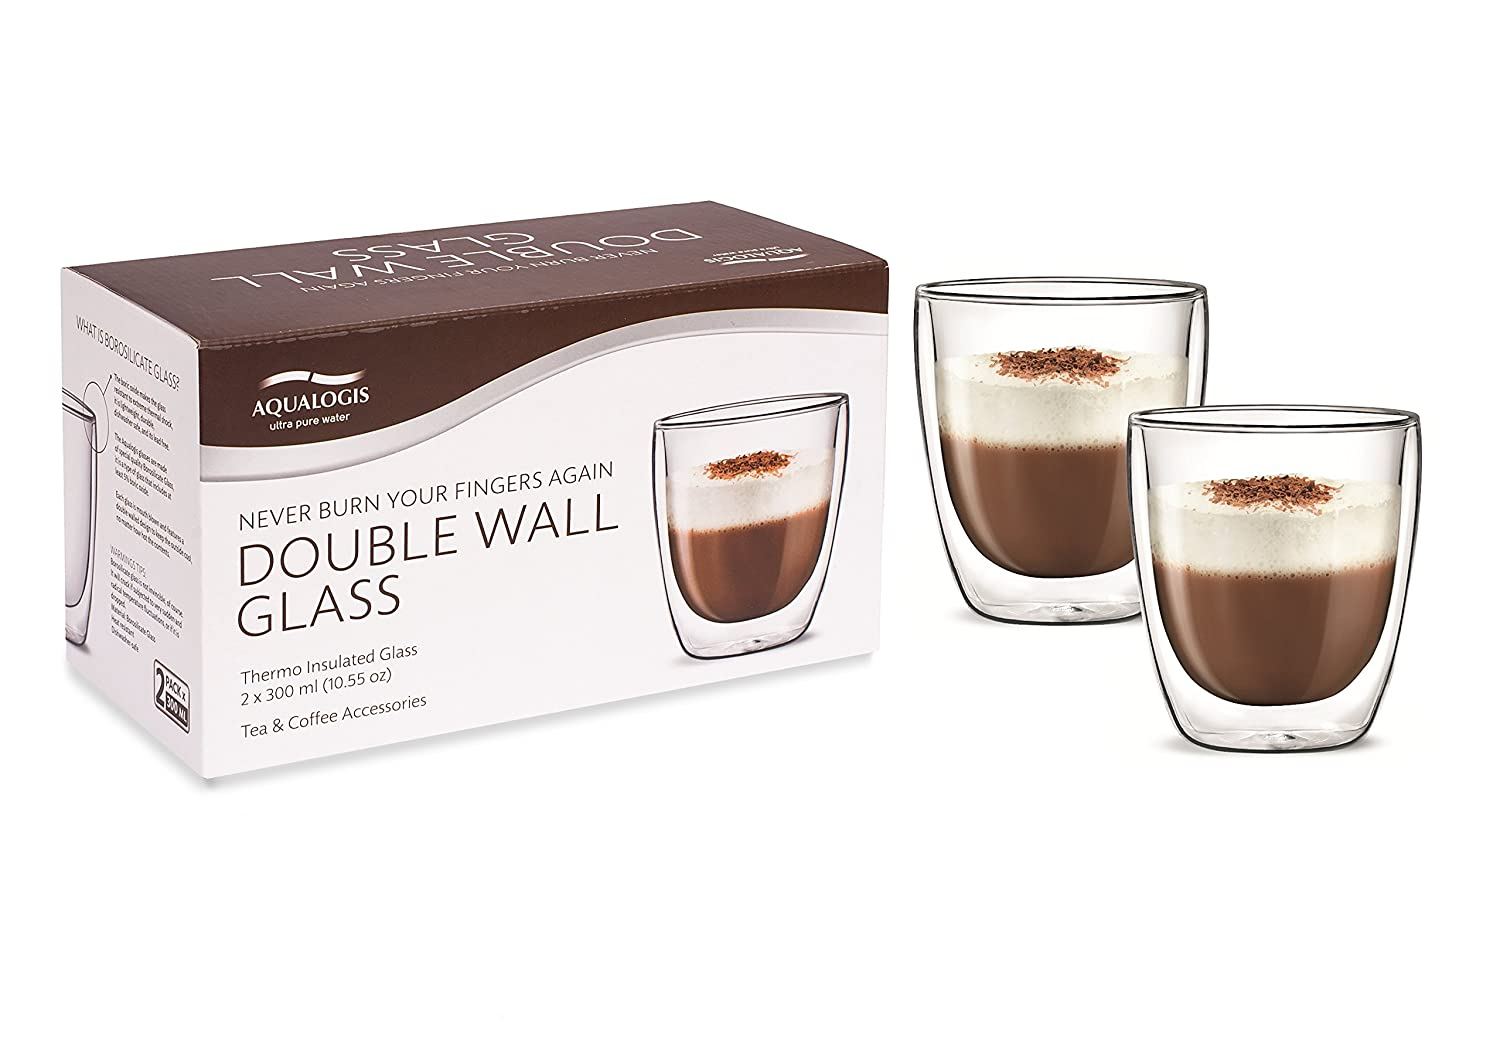 Aqualogis Double Wall Thermo insulated Glass - Cappuccino Coffee & Tea 300 ml, Set of 2